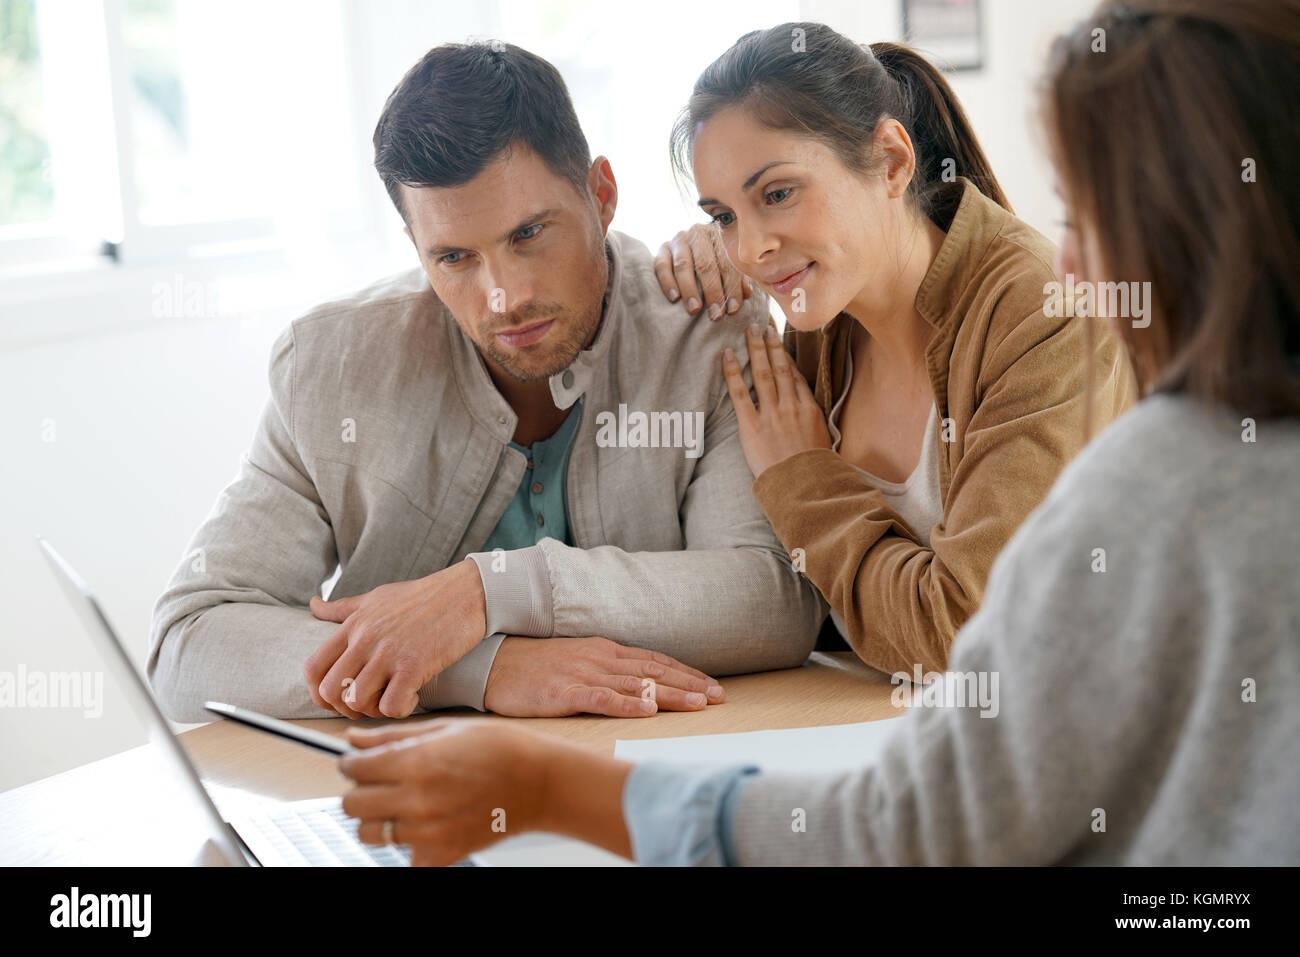 Couple meeting architect for future home designing - Stock Image